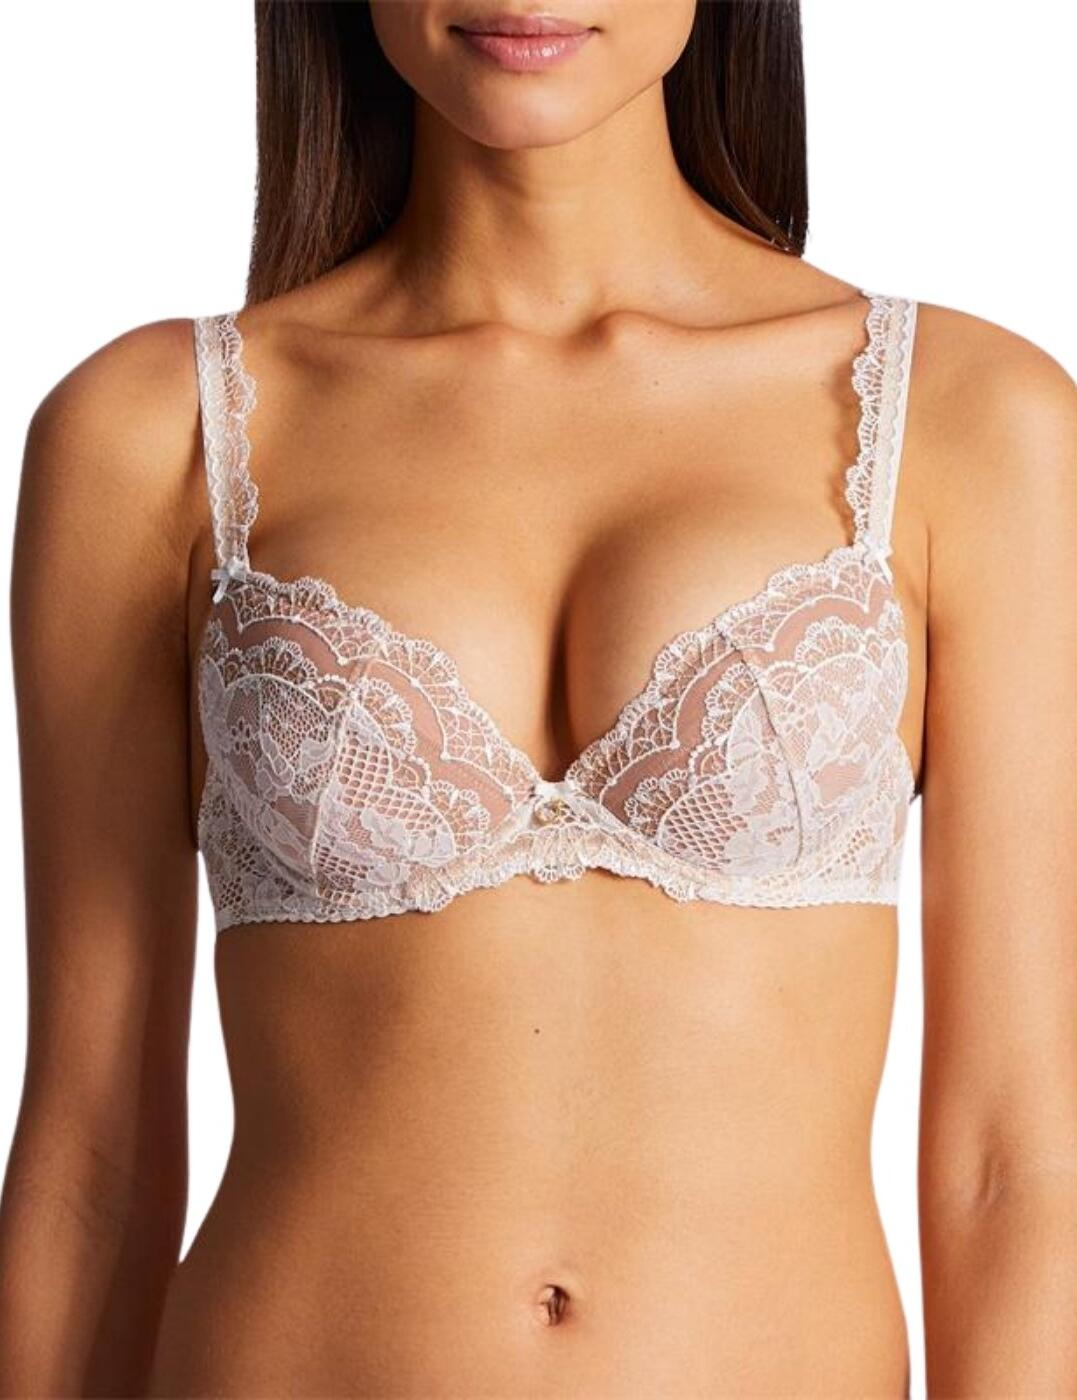 ND18 Aubade Soleil Nocturne Push-Up Bra - ND18 Opale